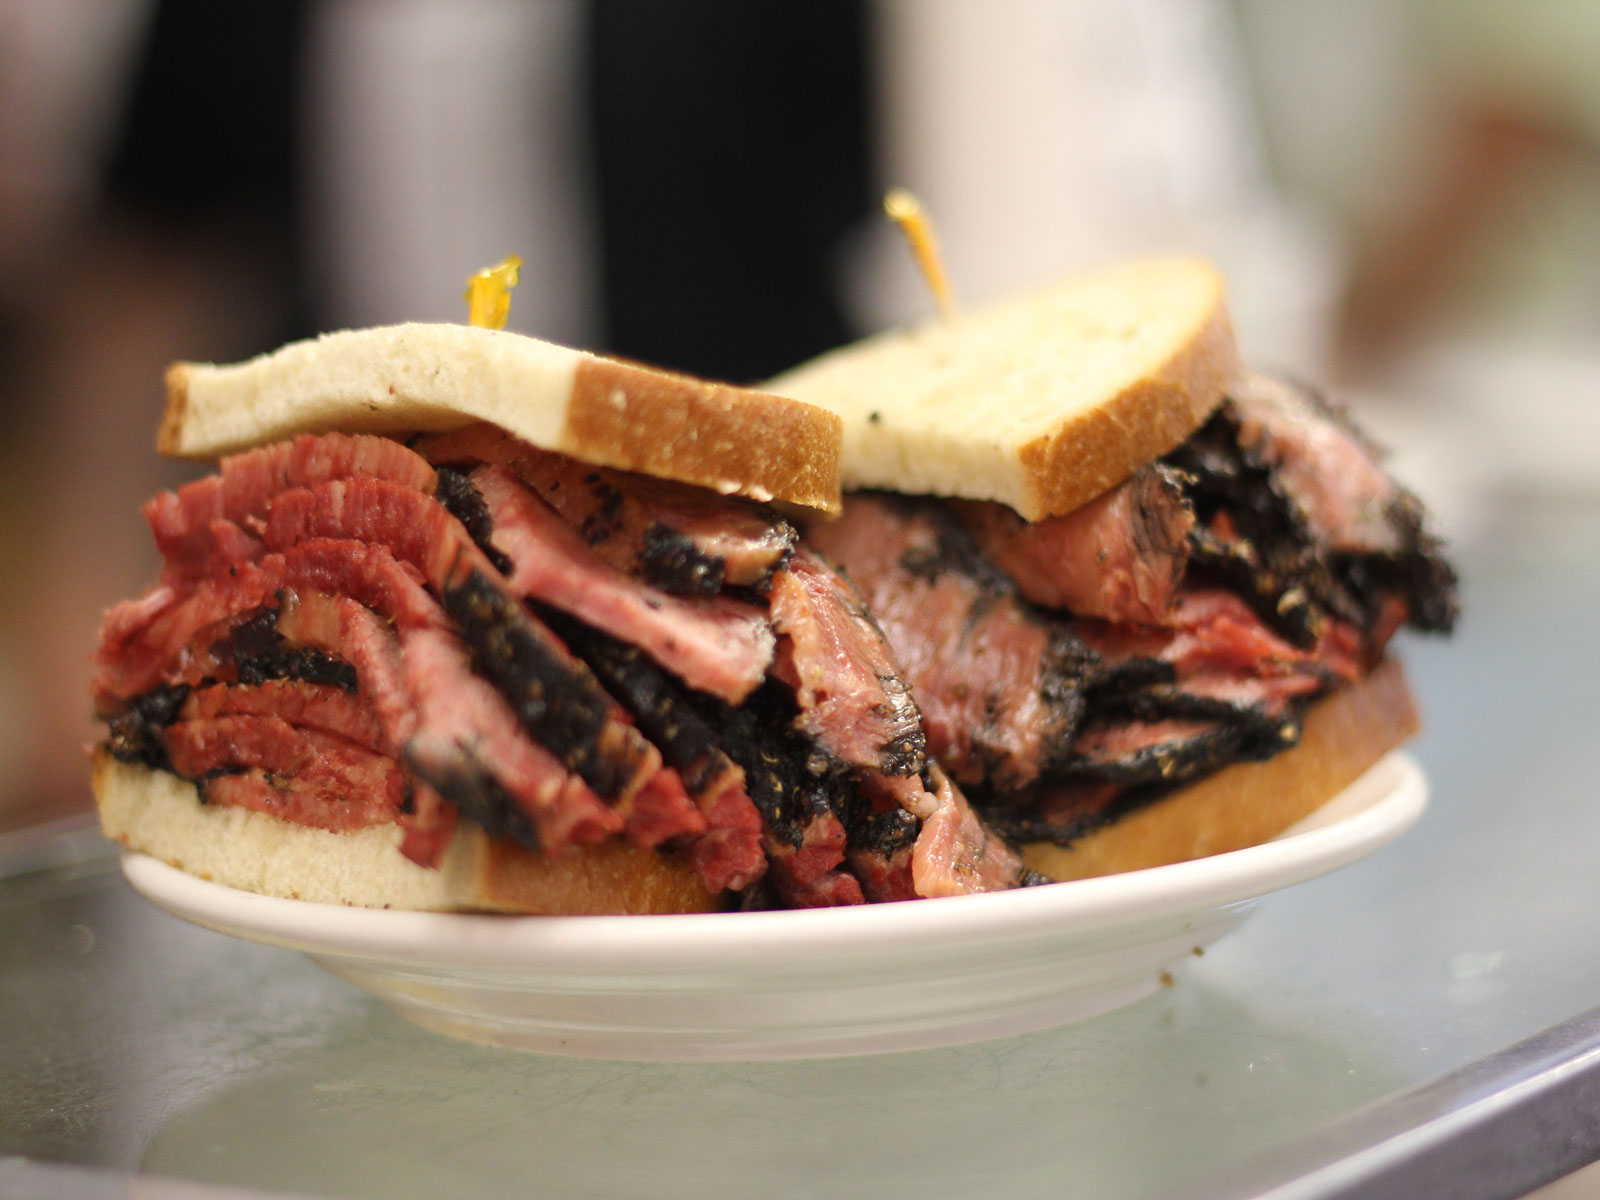 You Can Now Order Katz's Pastrami Sandwiches at The Met